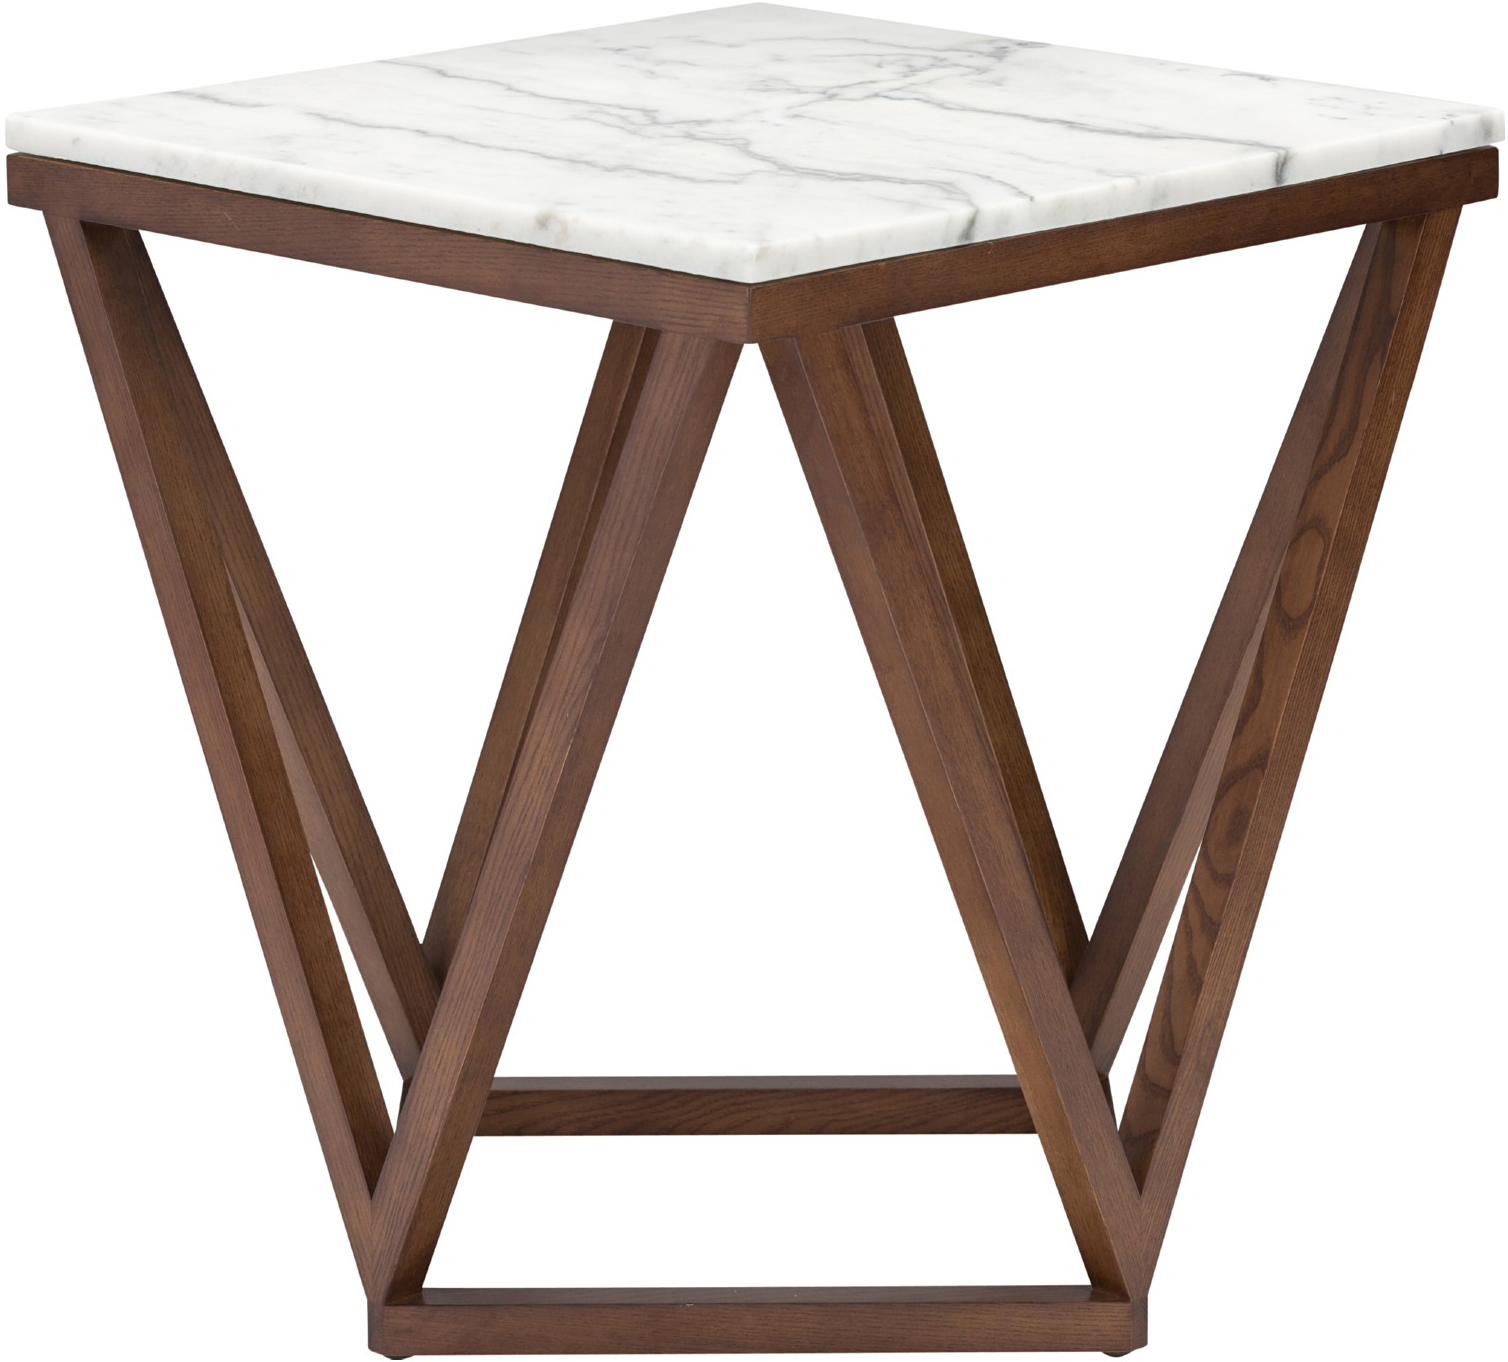 the jasmine side table in white